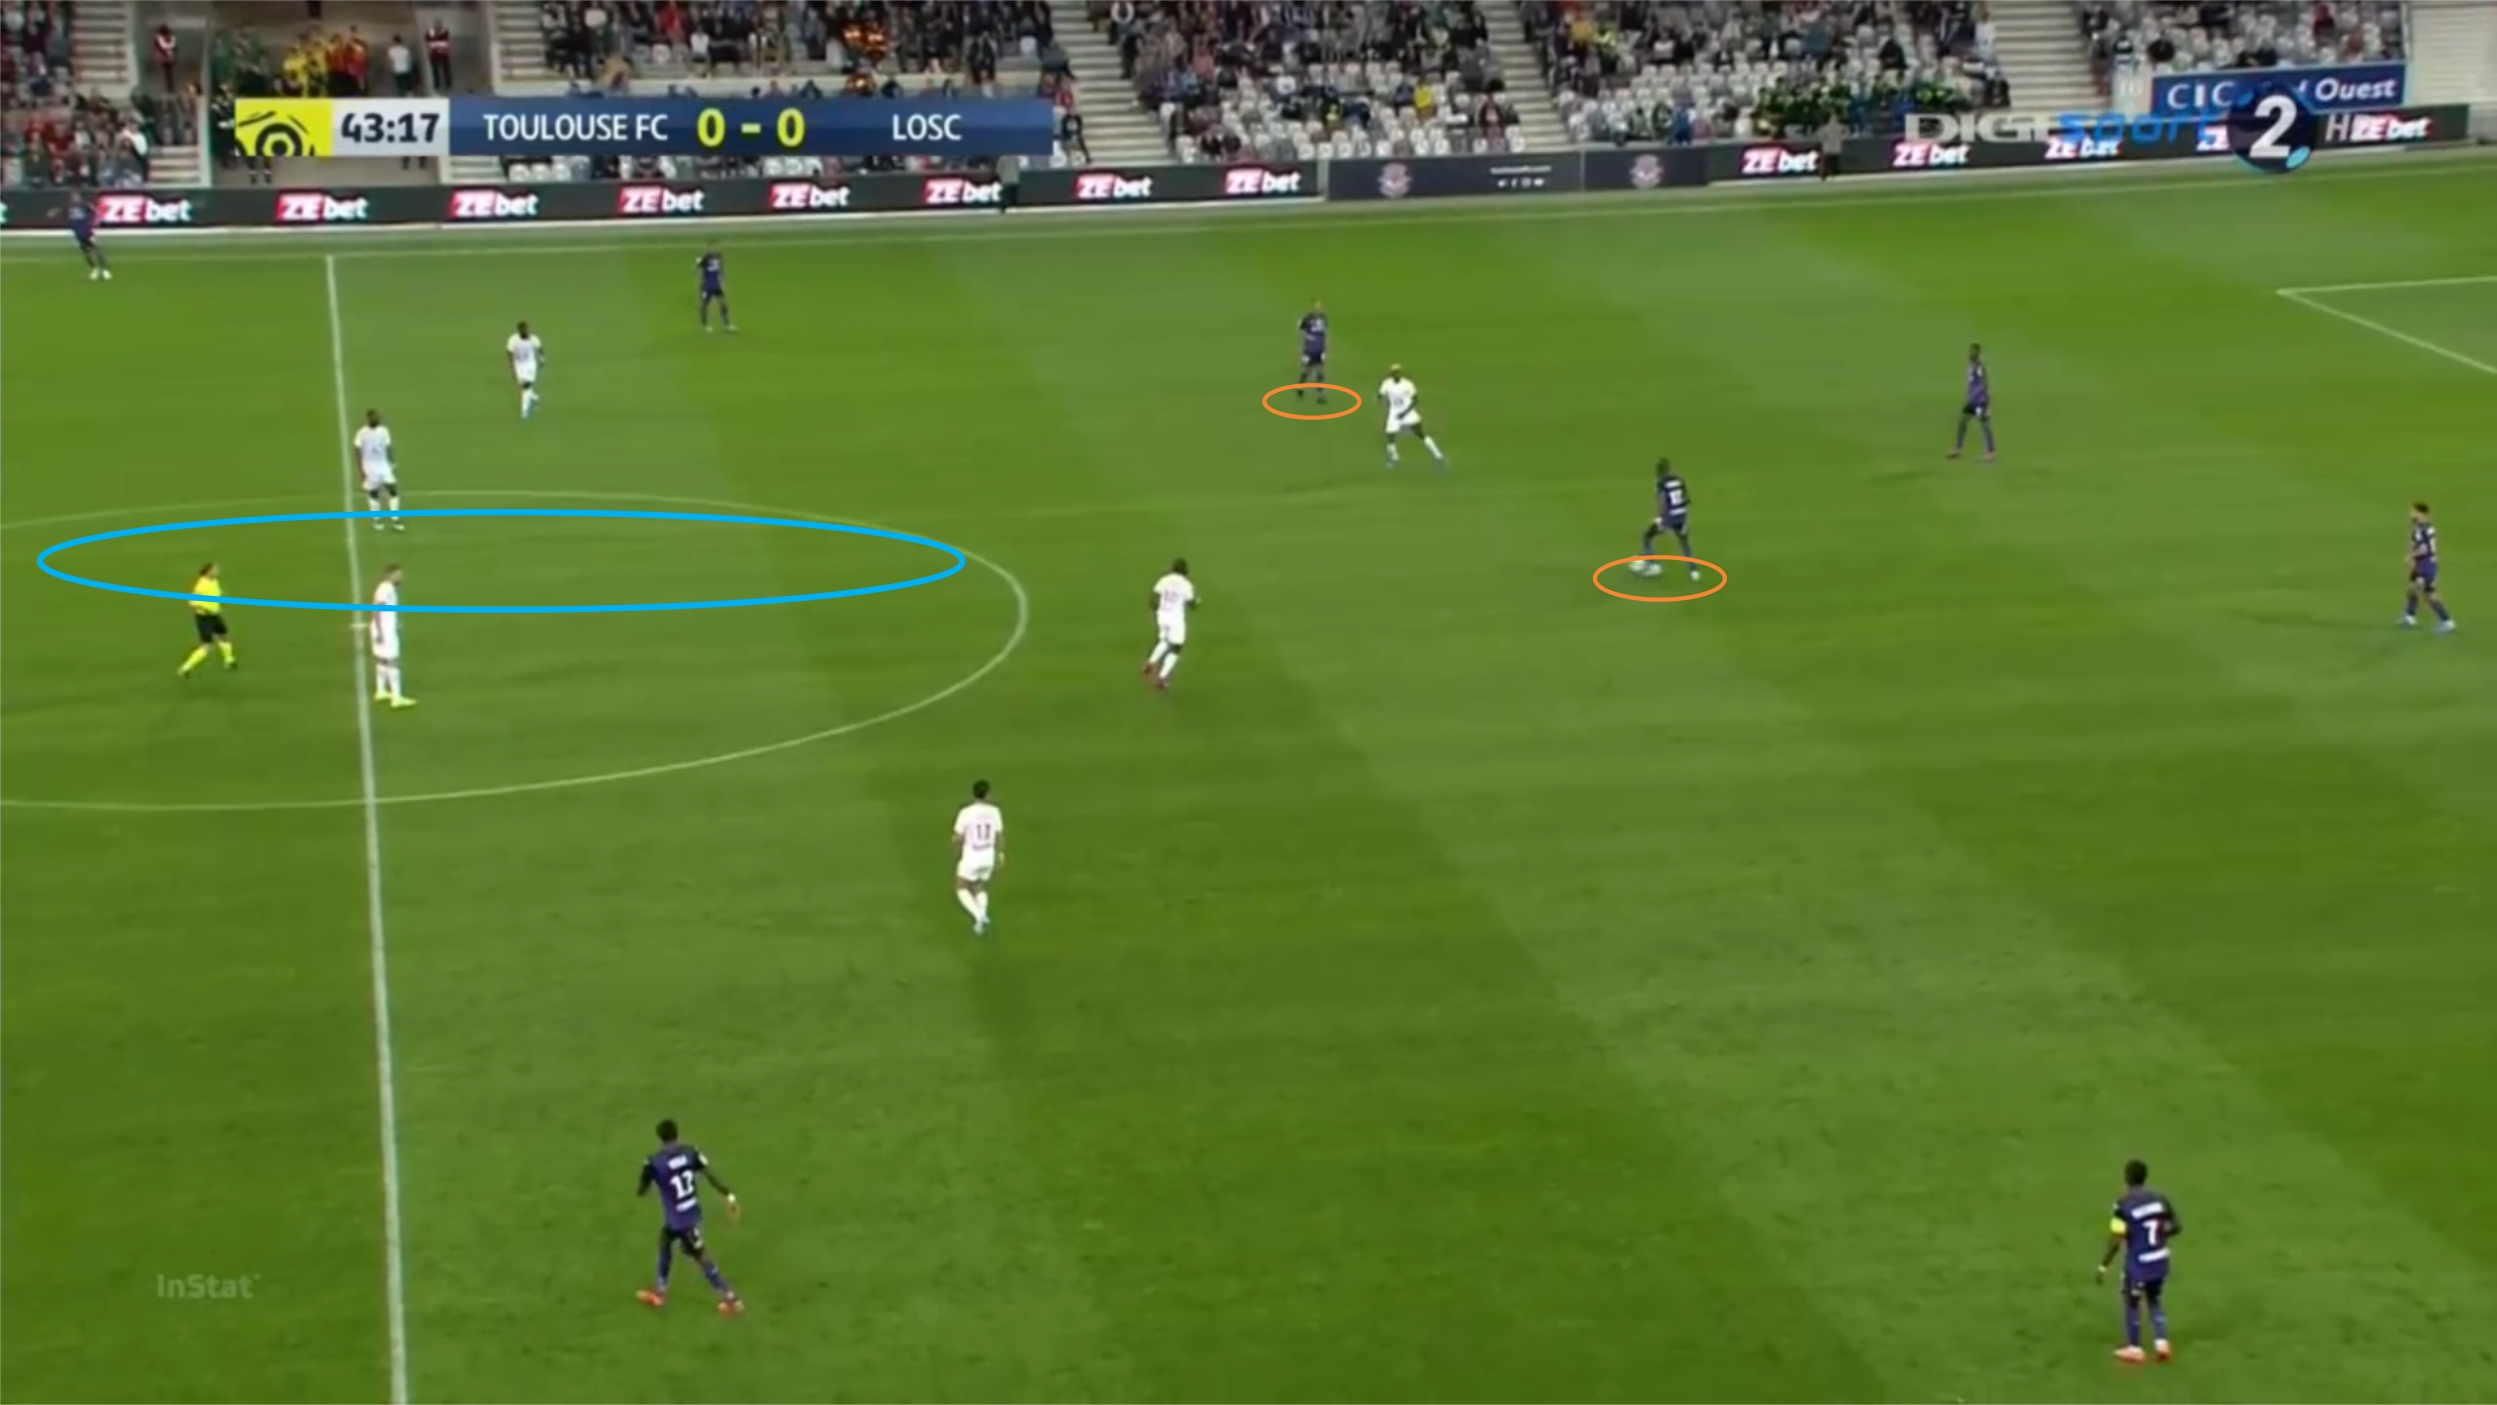 Toulouse 2019/20: Analysing why they are struggling this season - scout report - tactical analysis - tactics